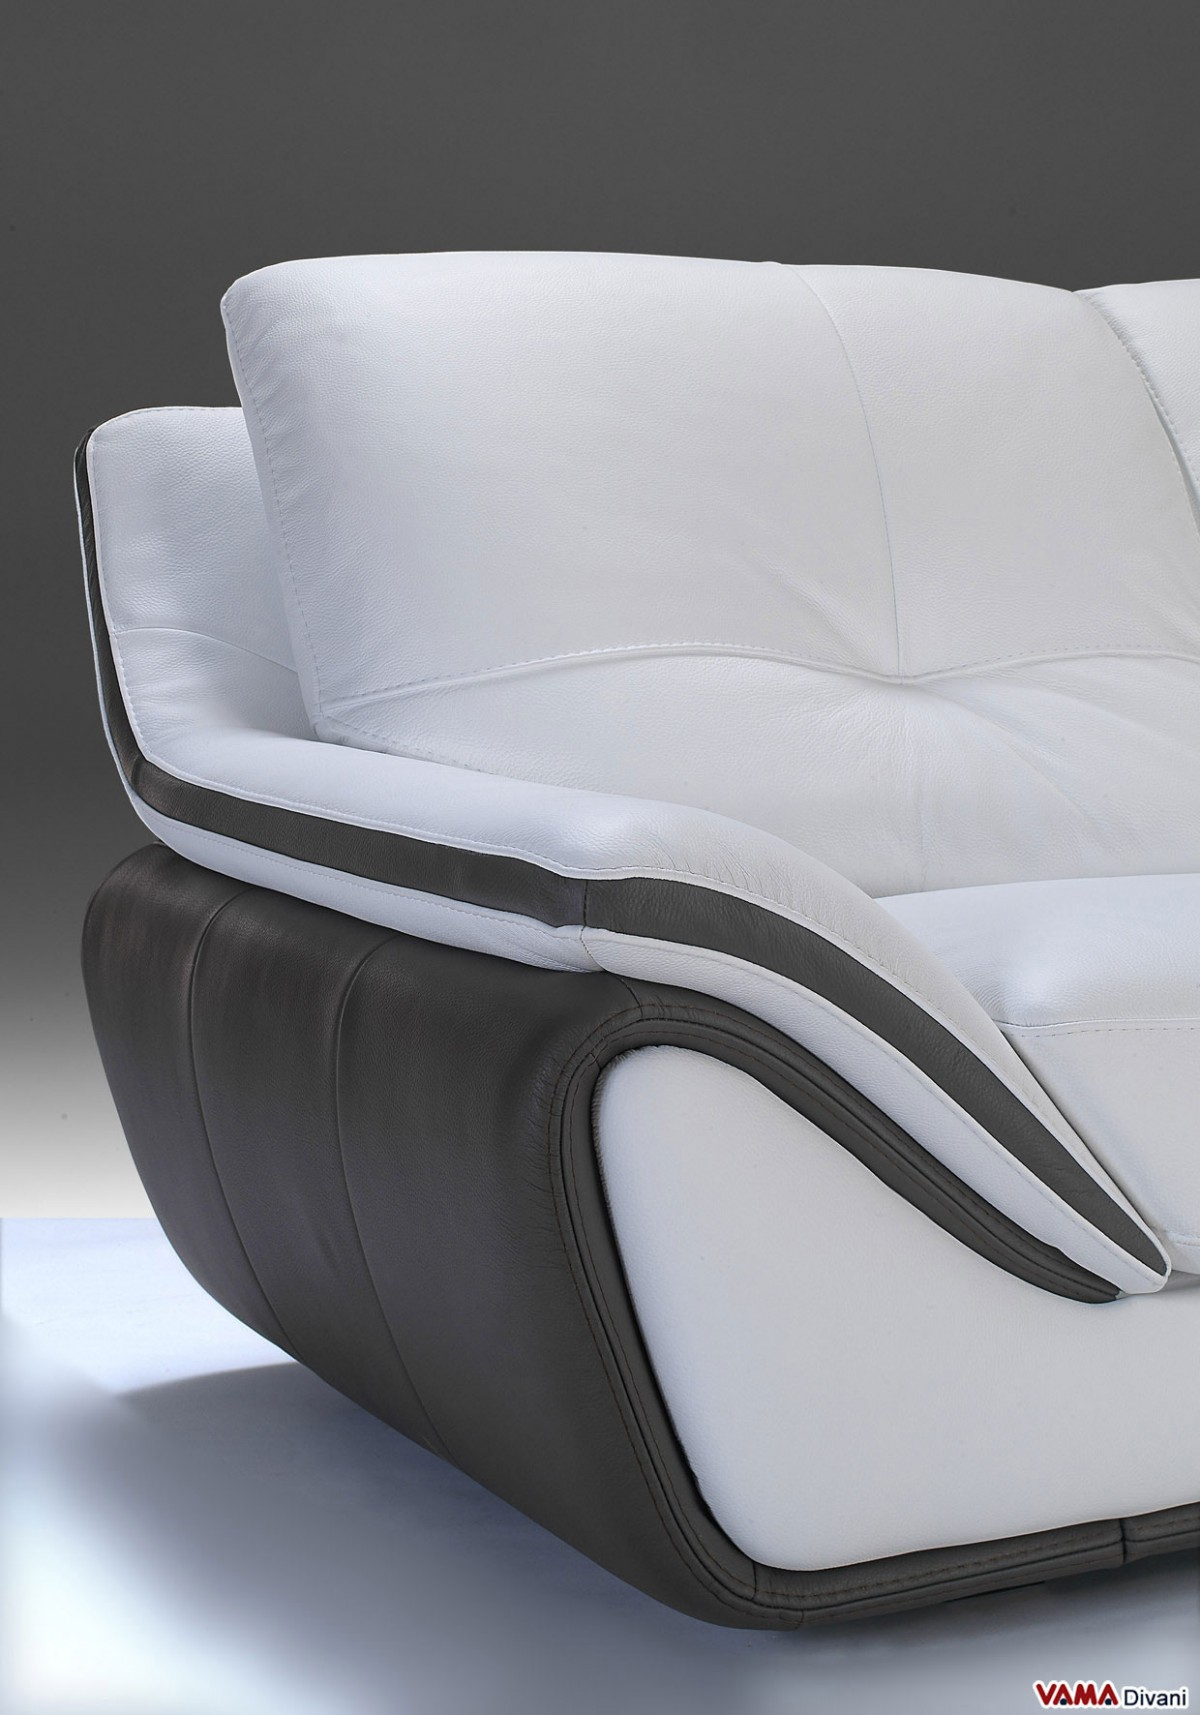 contemporary white leather sofa large and high back Modern White Leather Sofa Italian White Leather Sectional Sofa